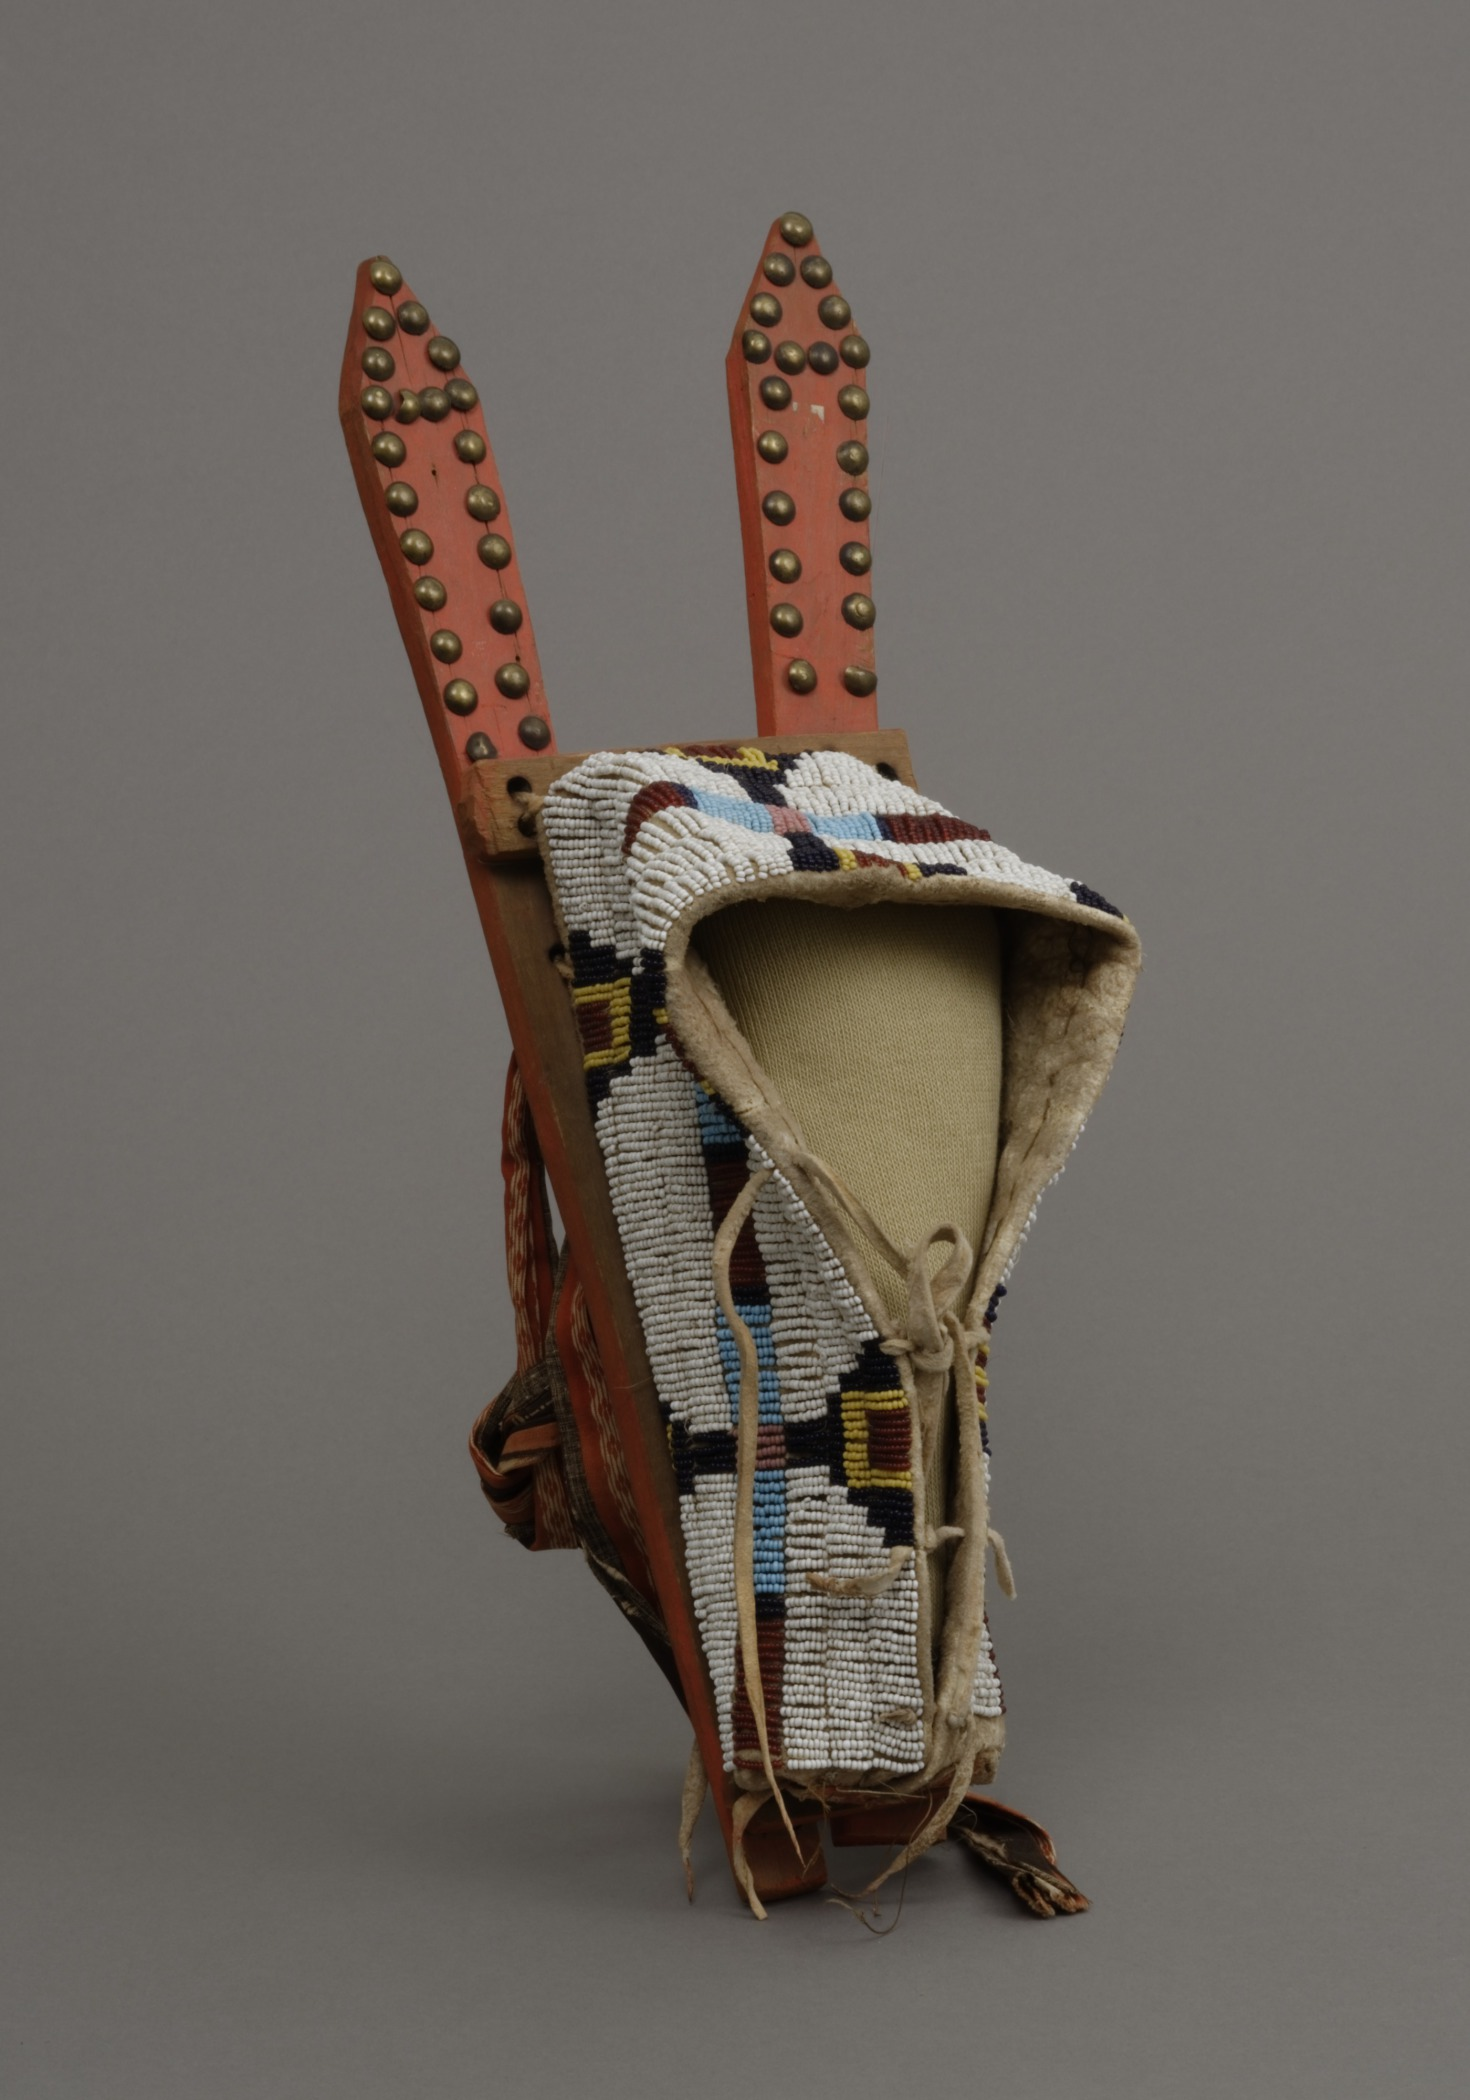 Tsistsistas / Suhtai (Cheyenne), toy cradleboard for a doll, about 1870. Wood, glass beads, hide, brass tacks, cotton cloth, paint, sinew, and thread, 4 3/4 × 16 1/4 × 5 1/2 in. Hood Museum of Art, Dartmouth College: Gift of Mrs. William M. Leeds; 13.13.760.